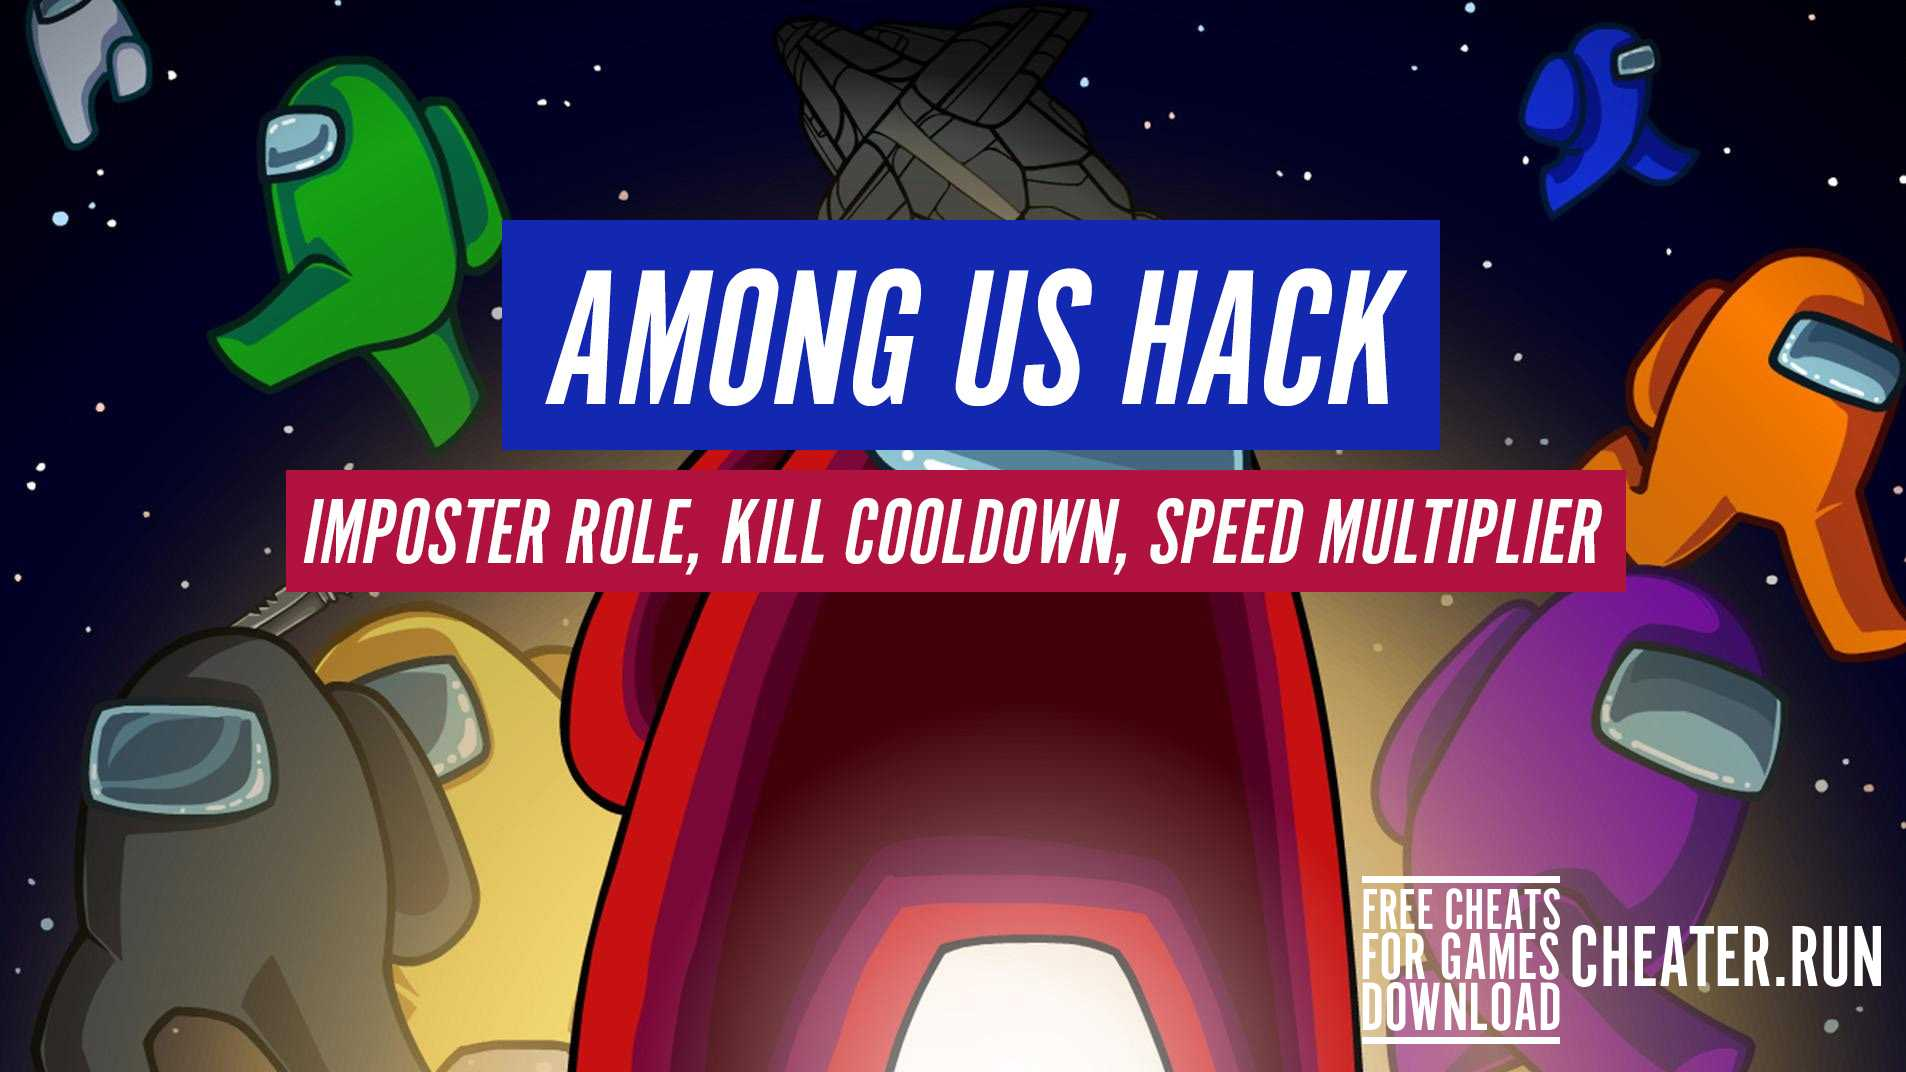 Cheat Free Among Us Hack Imposter Role Kill Cooldown Speed Multiplier